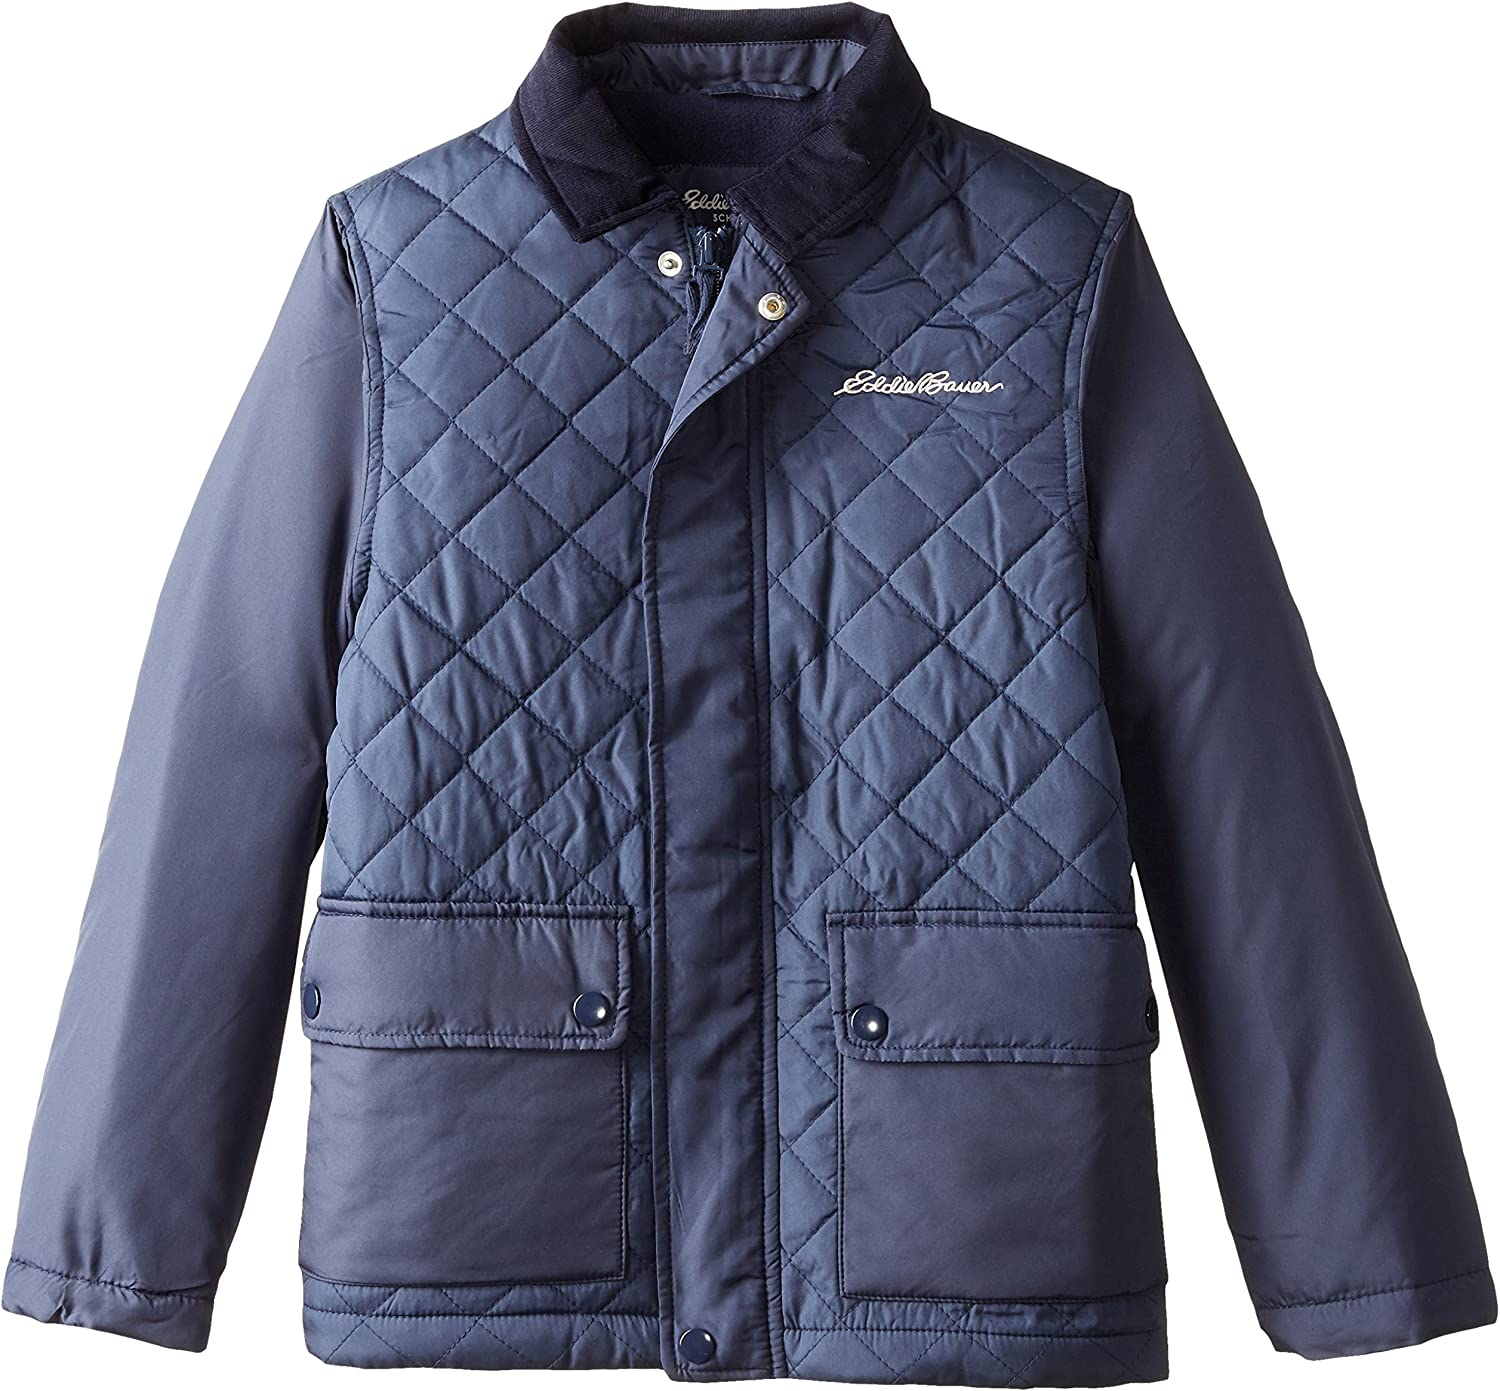 More Styles Available Eddie Bauer Boys Little Jacket